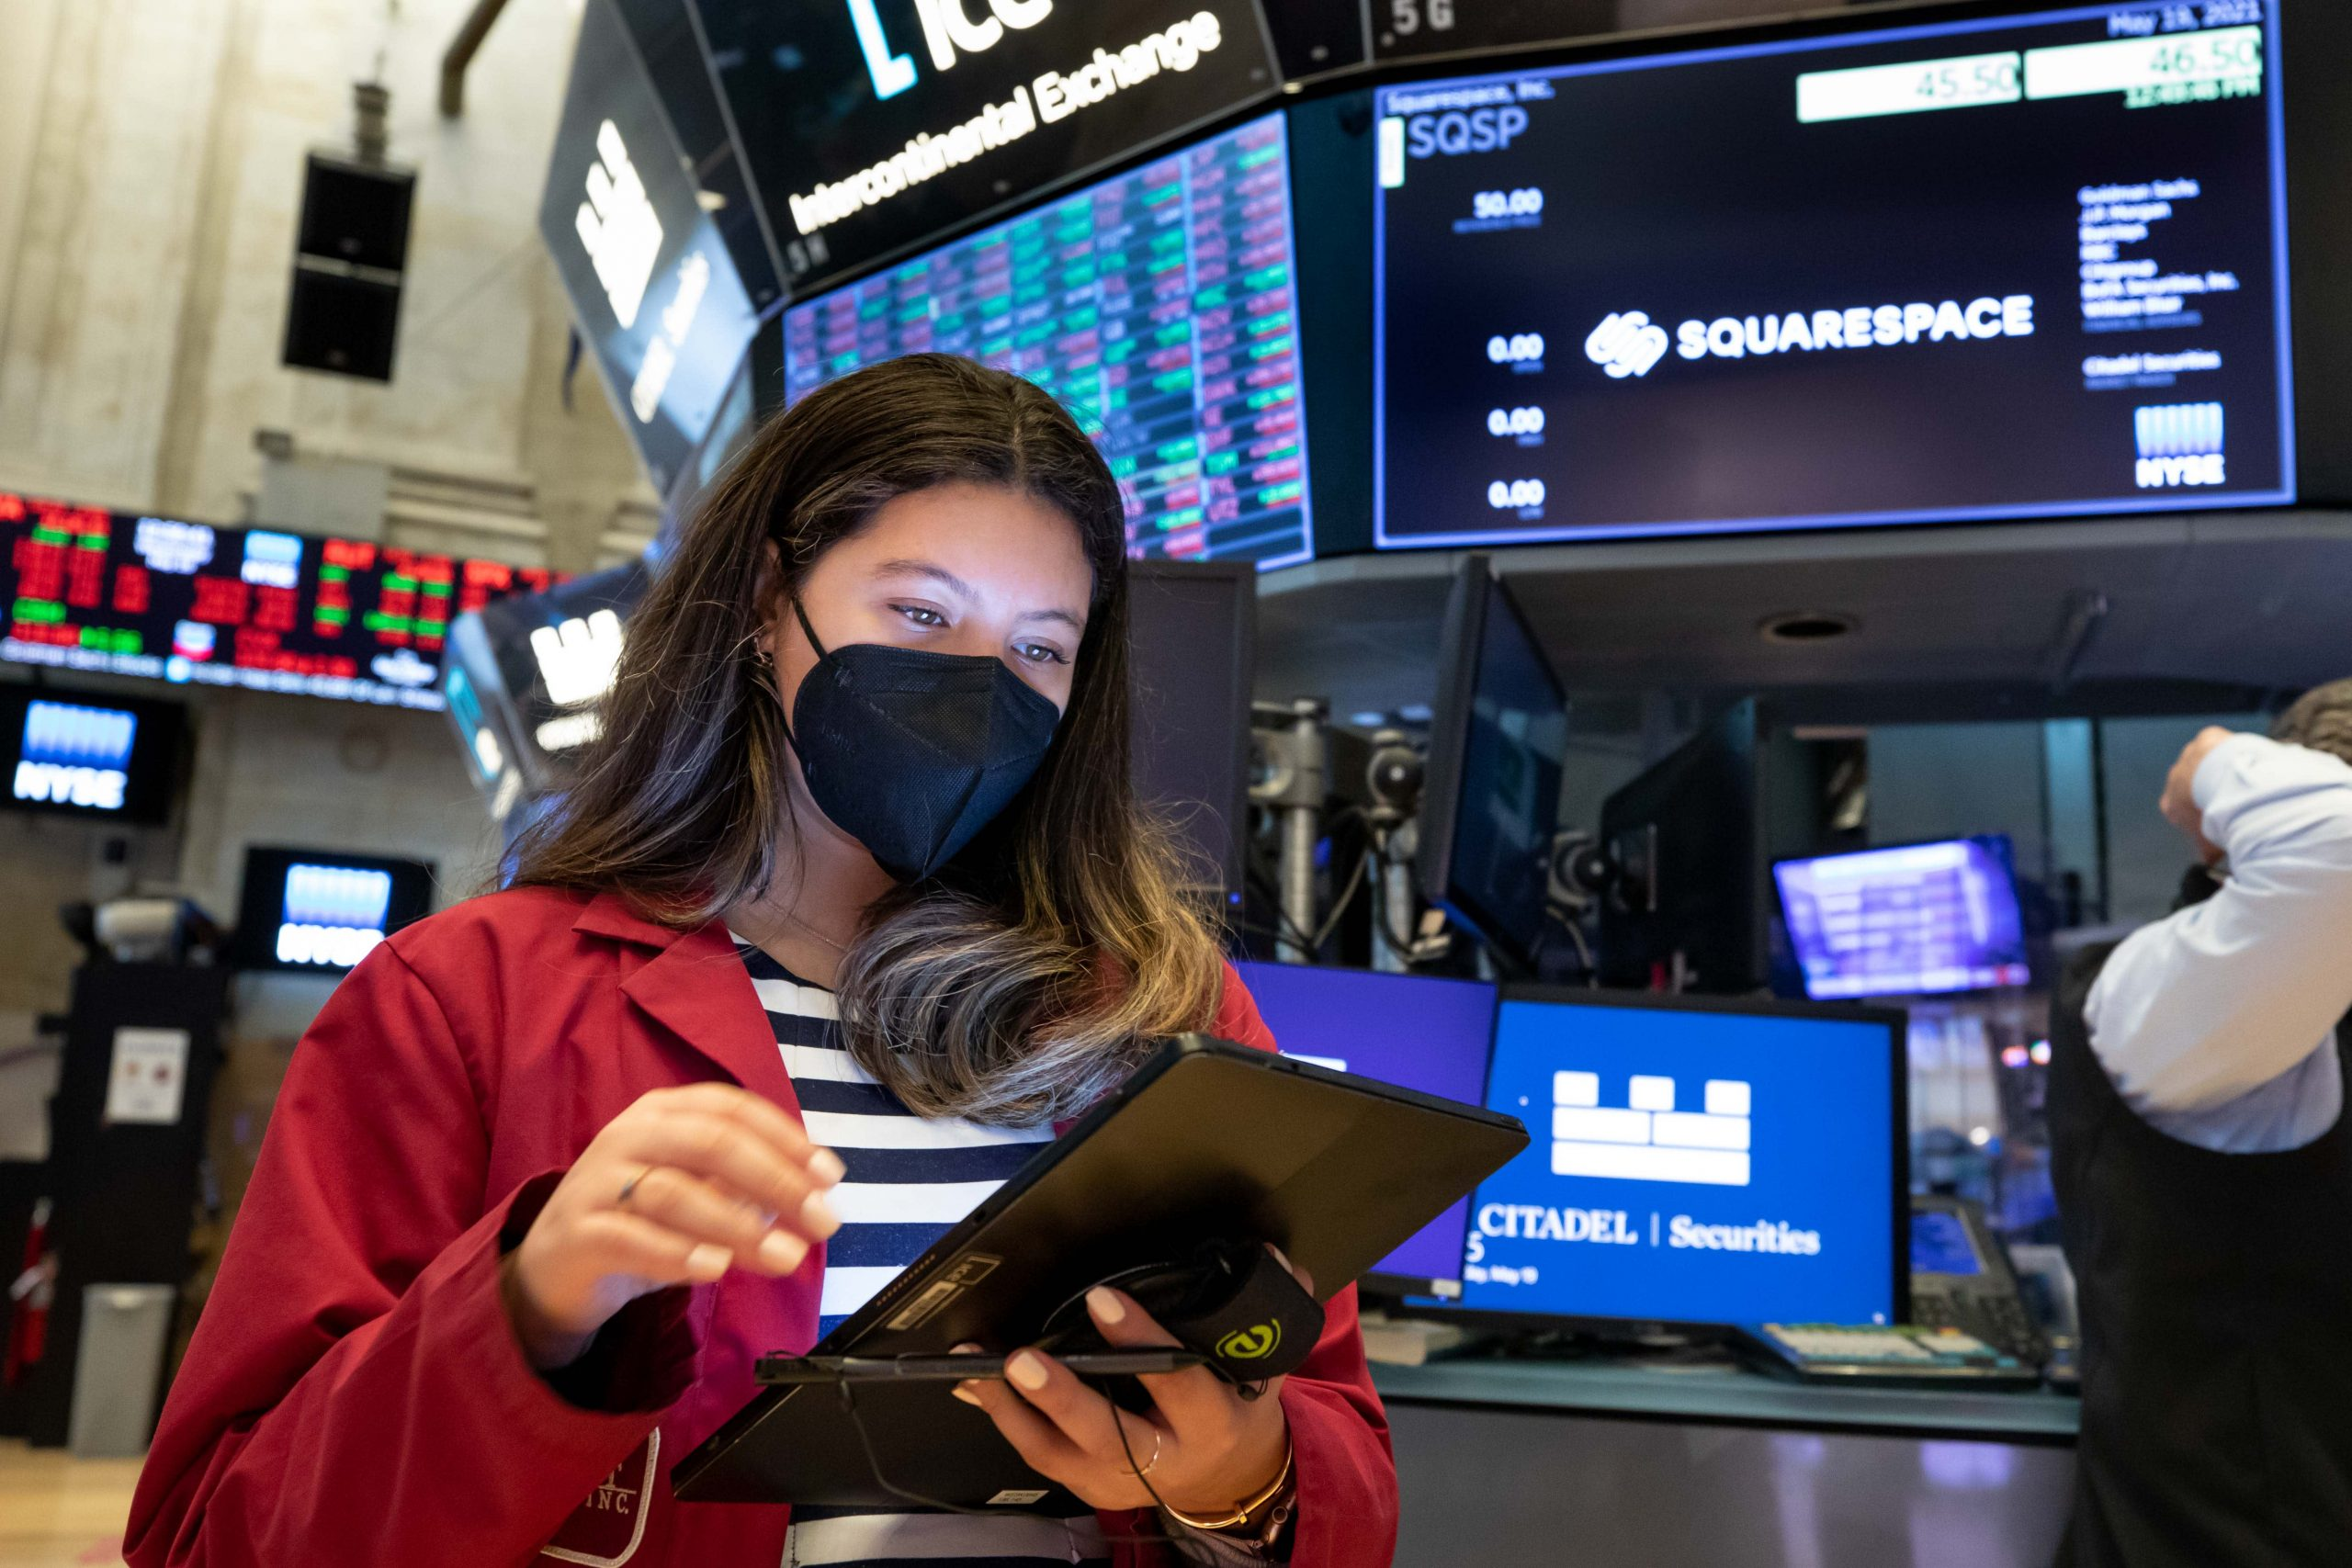 Stock futures are little changed ahead of jobs data